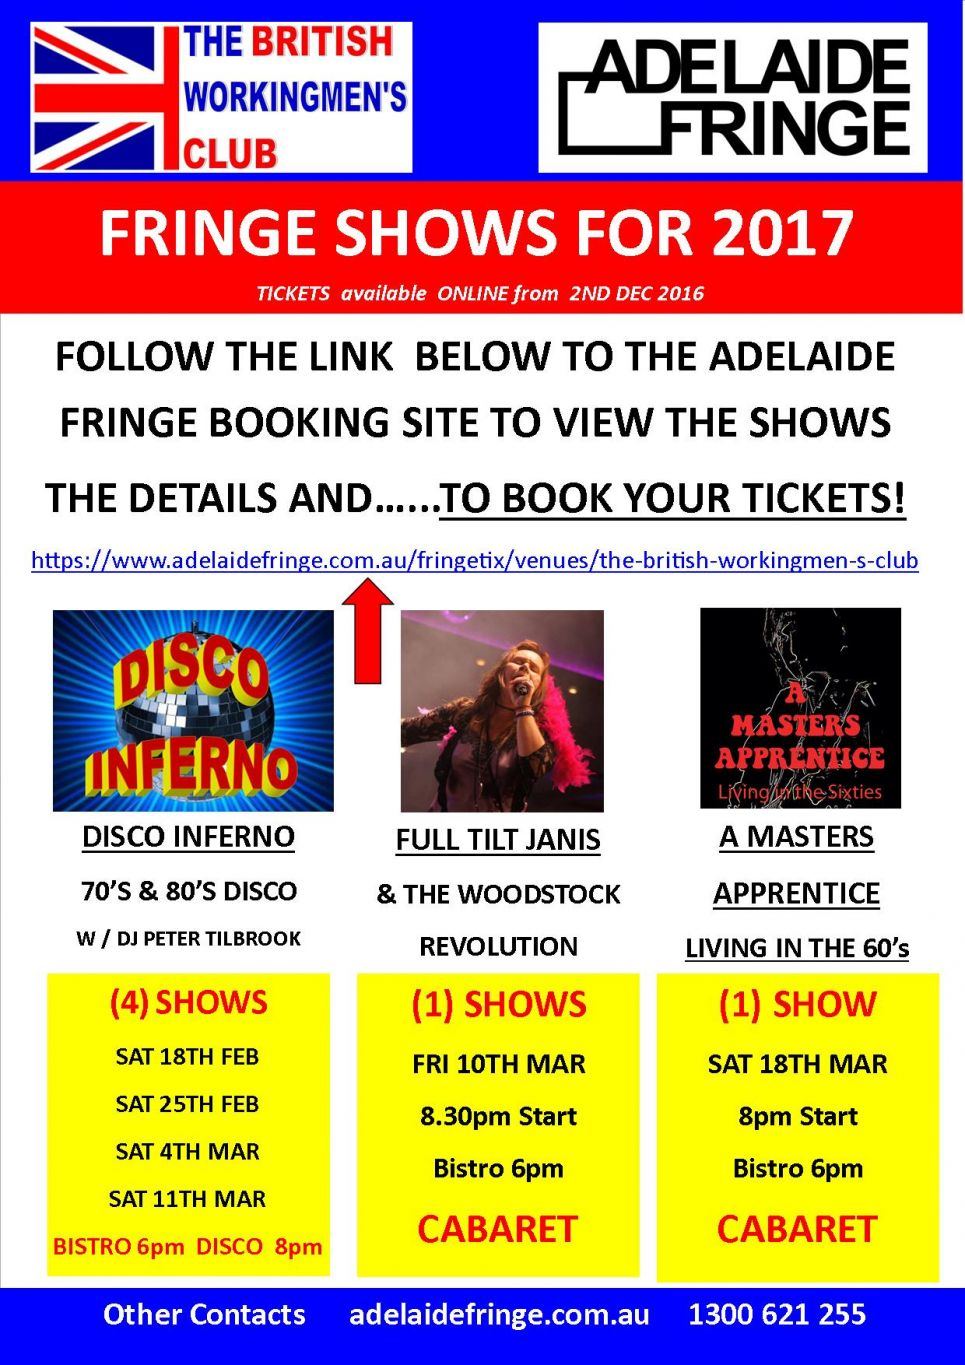 A LINK TO BUY FRINGE TICKETS 2017